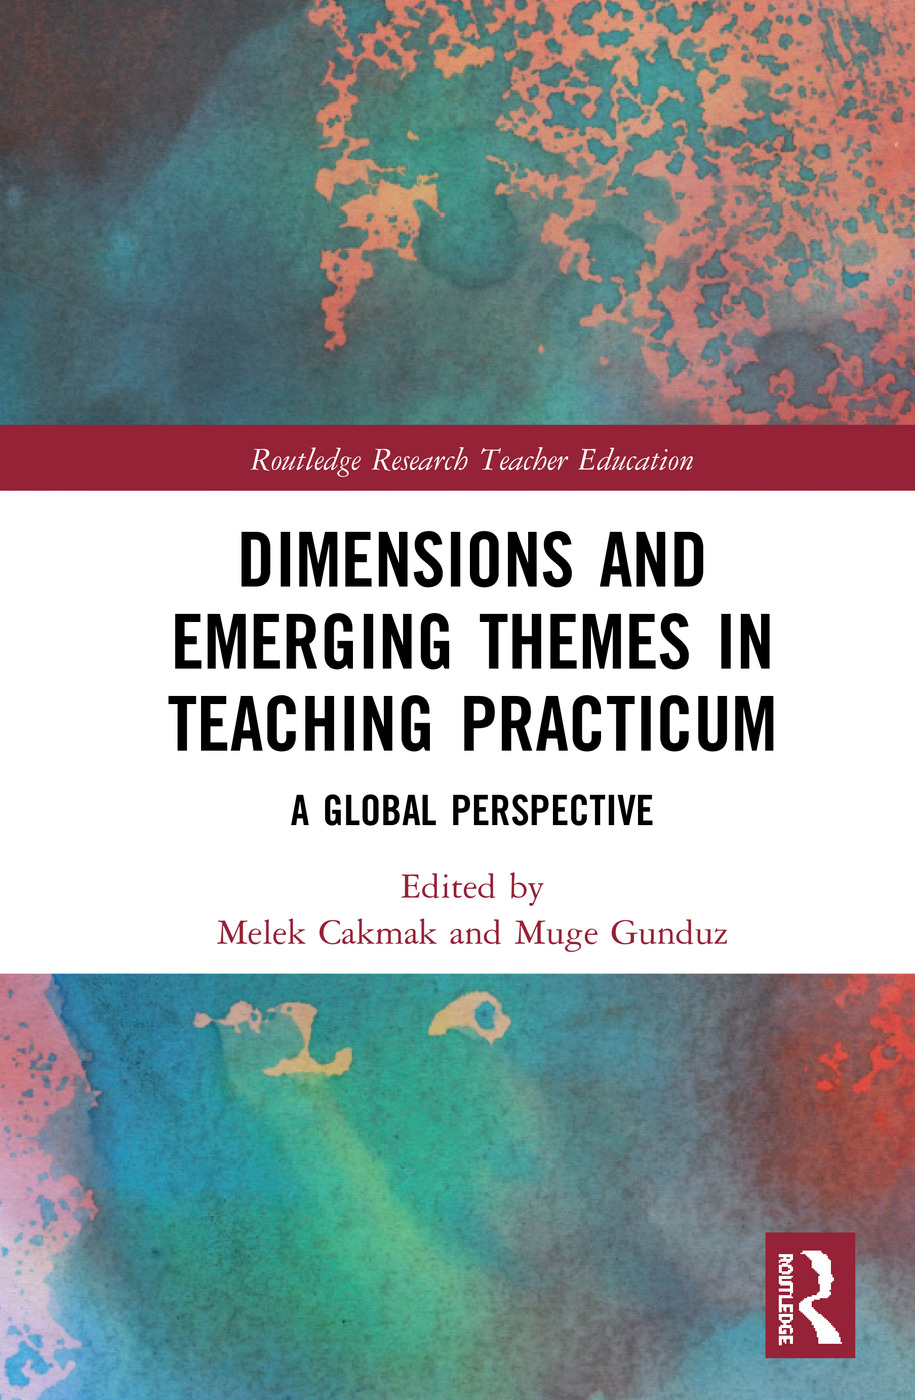 Virtual tools for teacher training and practicum interaction